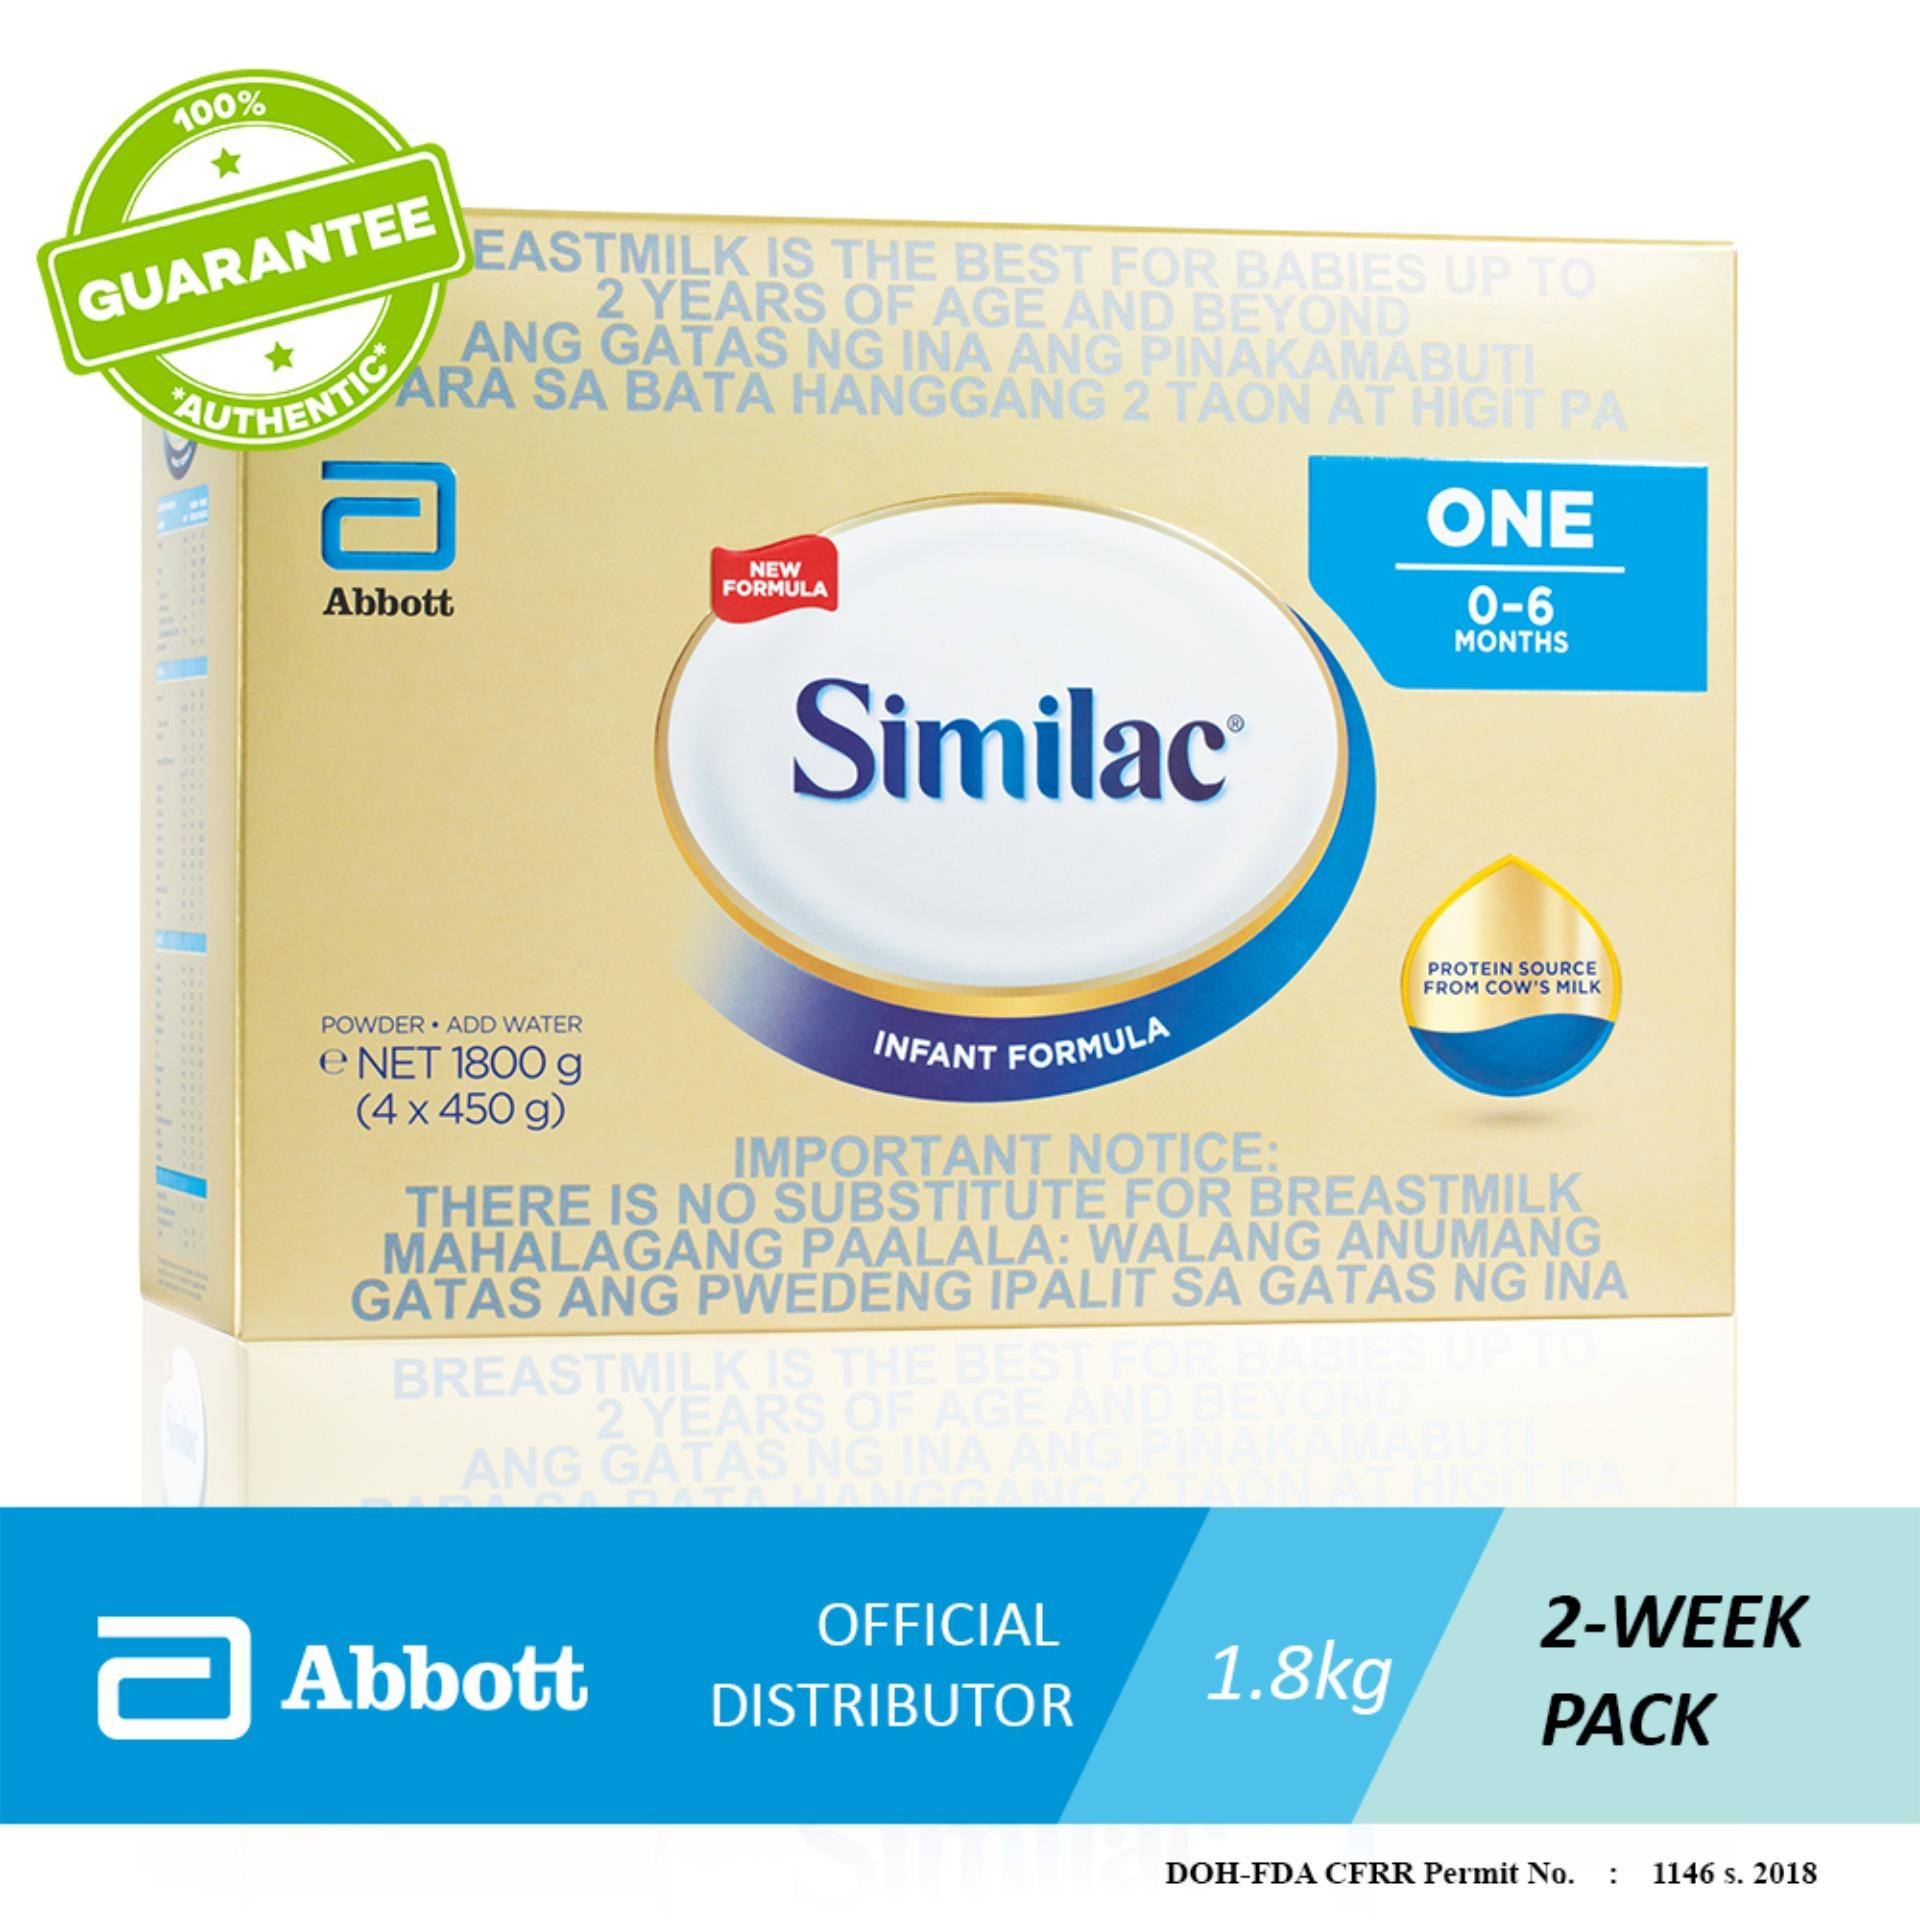 Infant Formula For Sale Baby Online Brands Prices S 26 Procal Gold Can 400g Abbott Similac Hmo 1800g 0 6 Month Old Infants